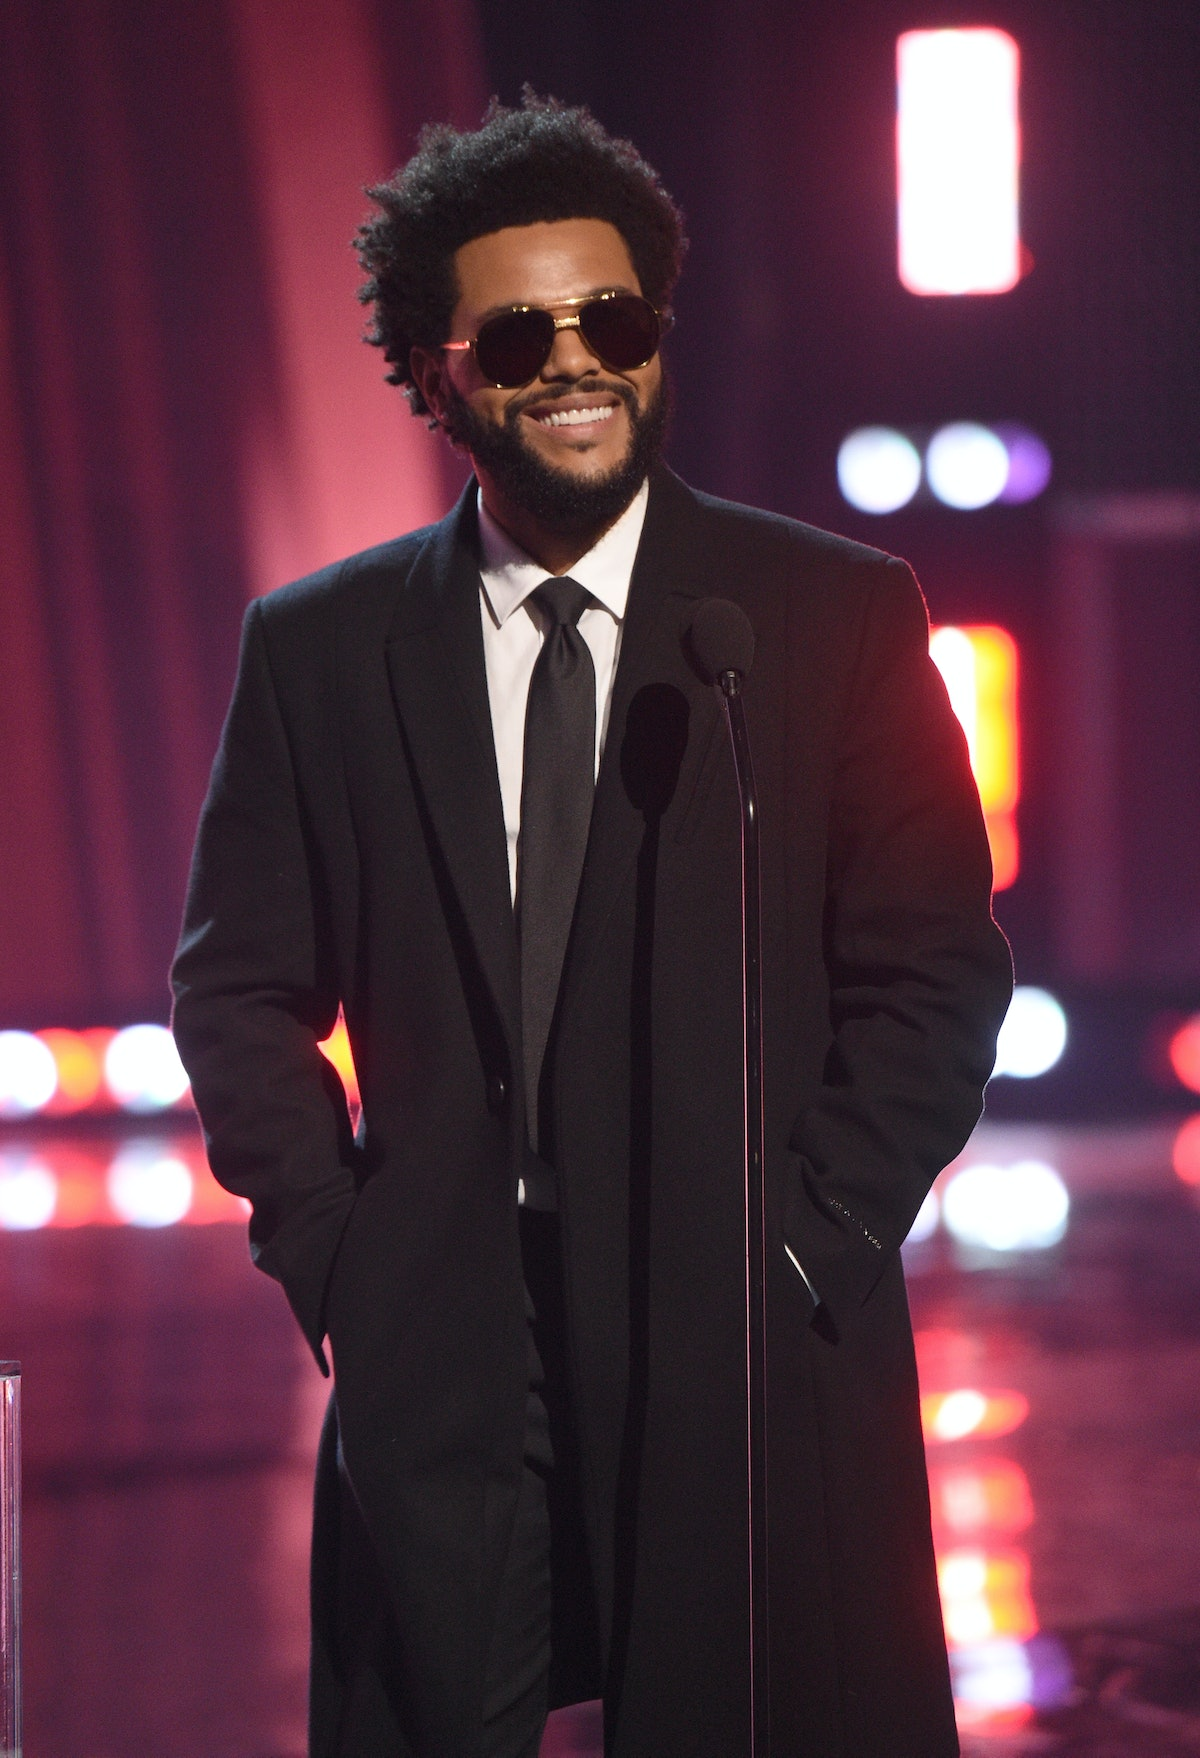 The Weeknd at the Grammys.